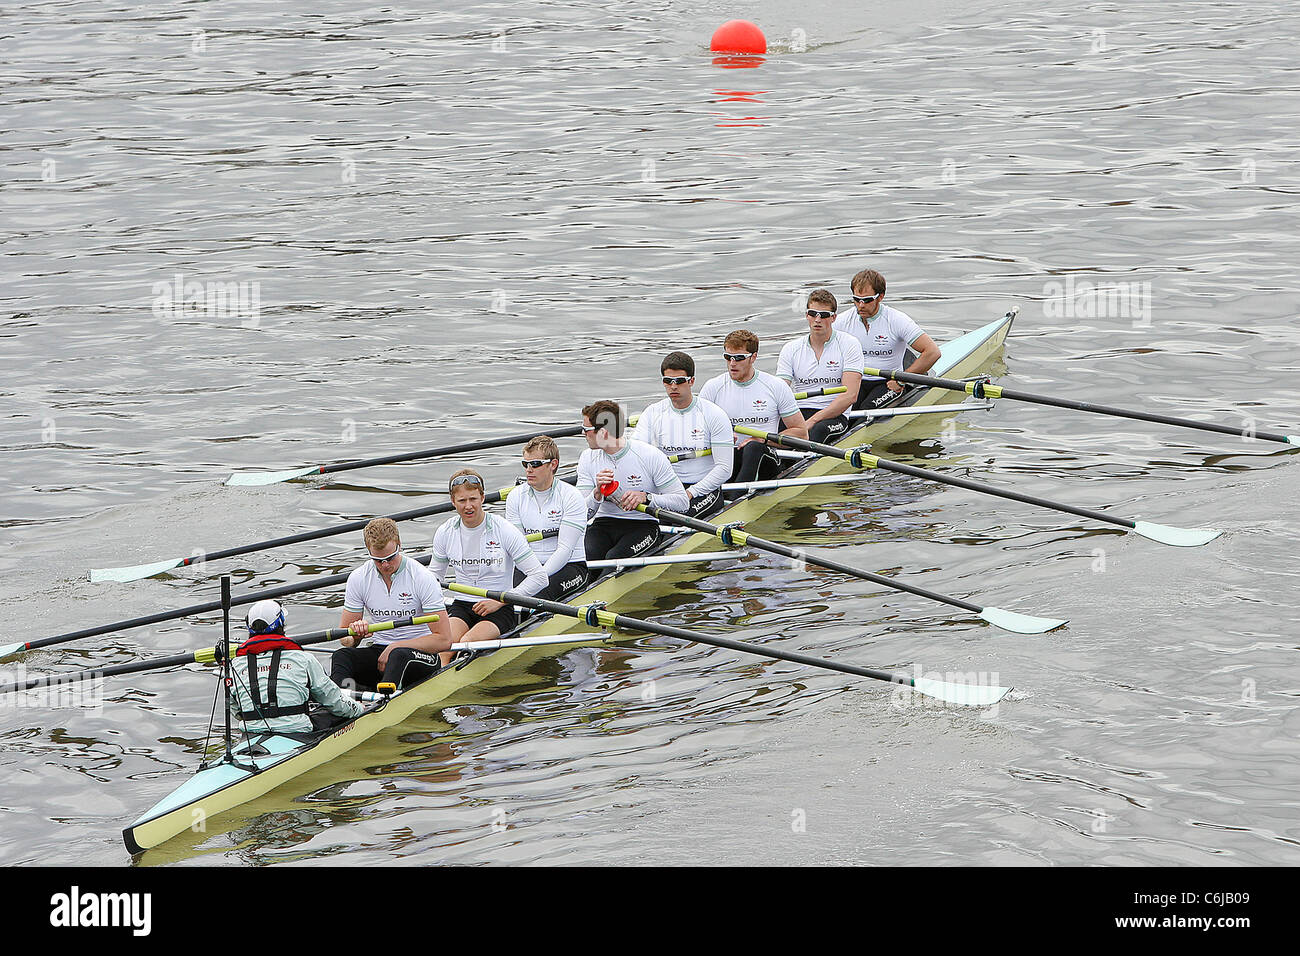 The Cambridge boat team wins at The 156th Oxford vs Cambridge boat race on River Thames London, England - 03.04.10 - Stock Image